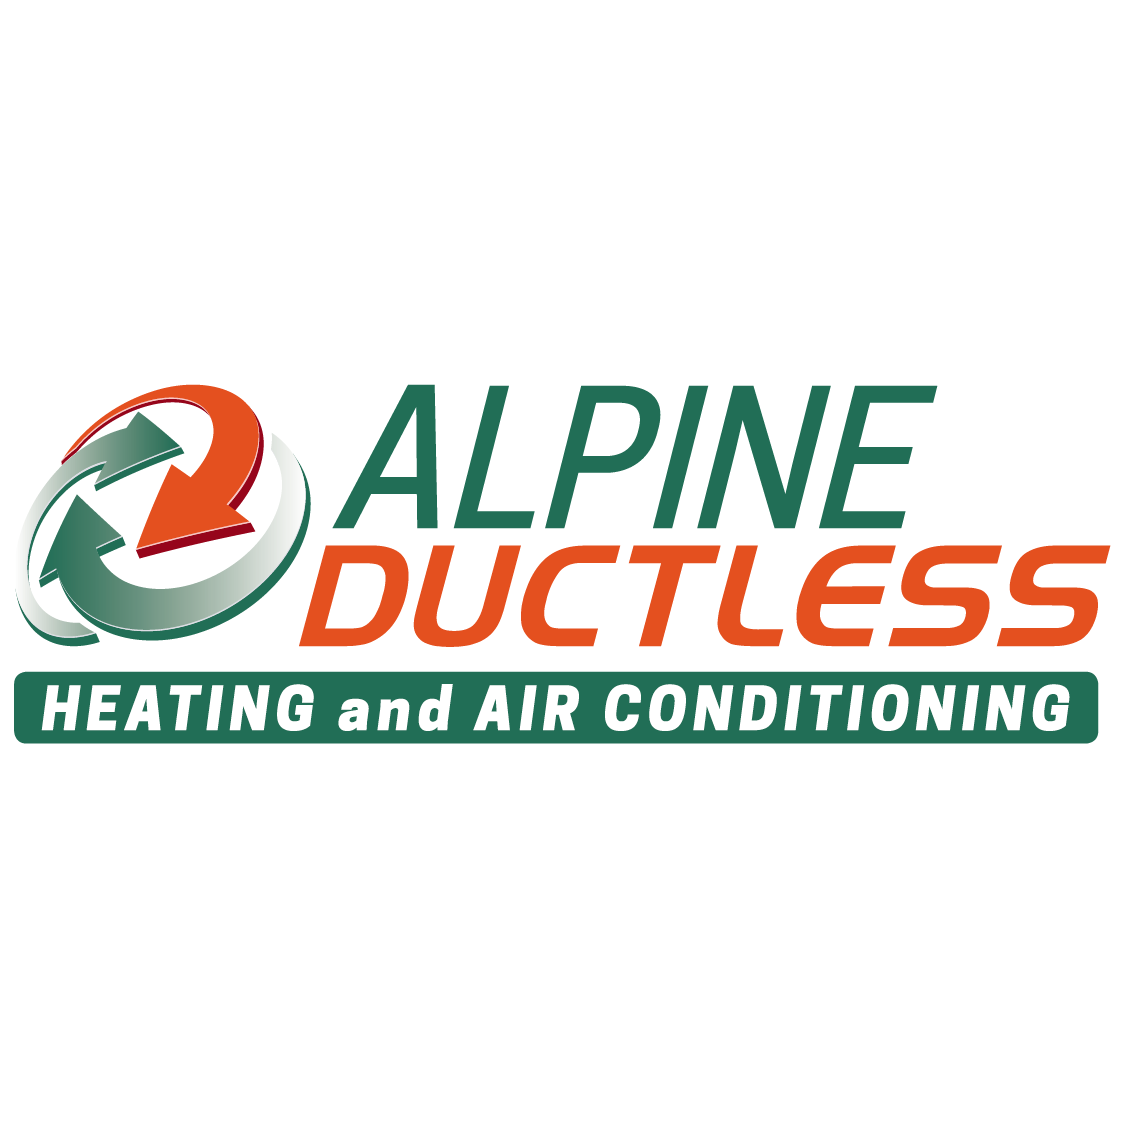 Alpine Ductless Heating and Air Conditioning